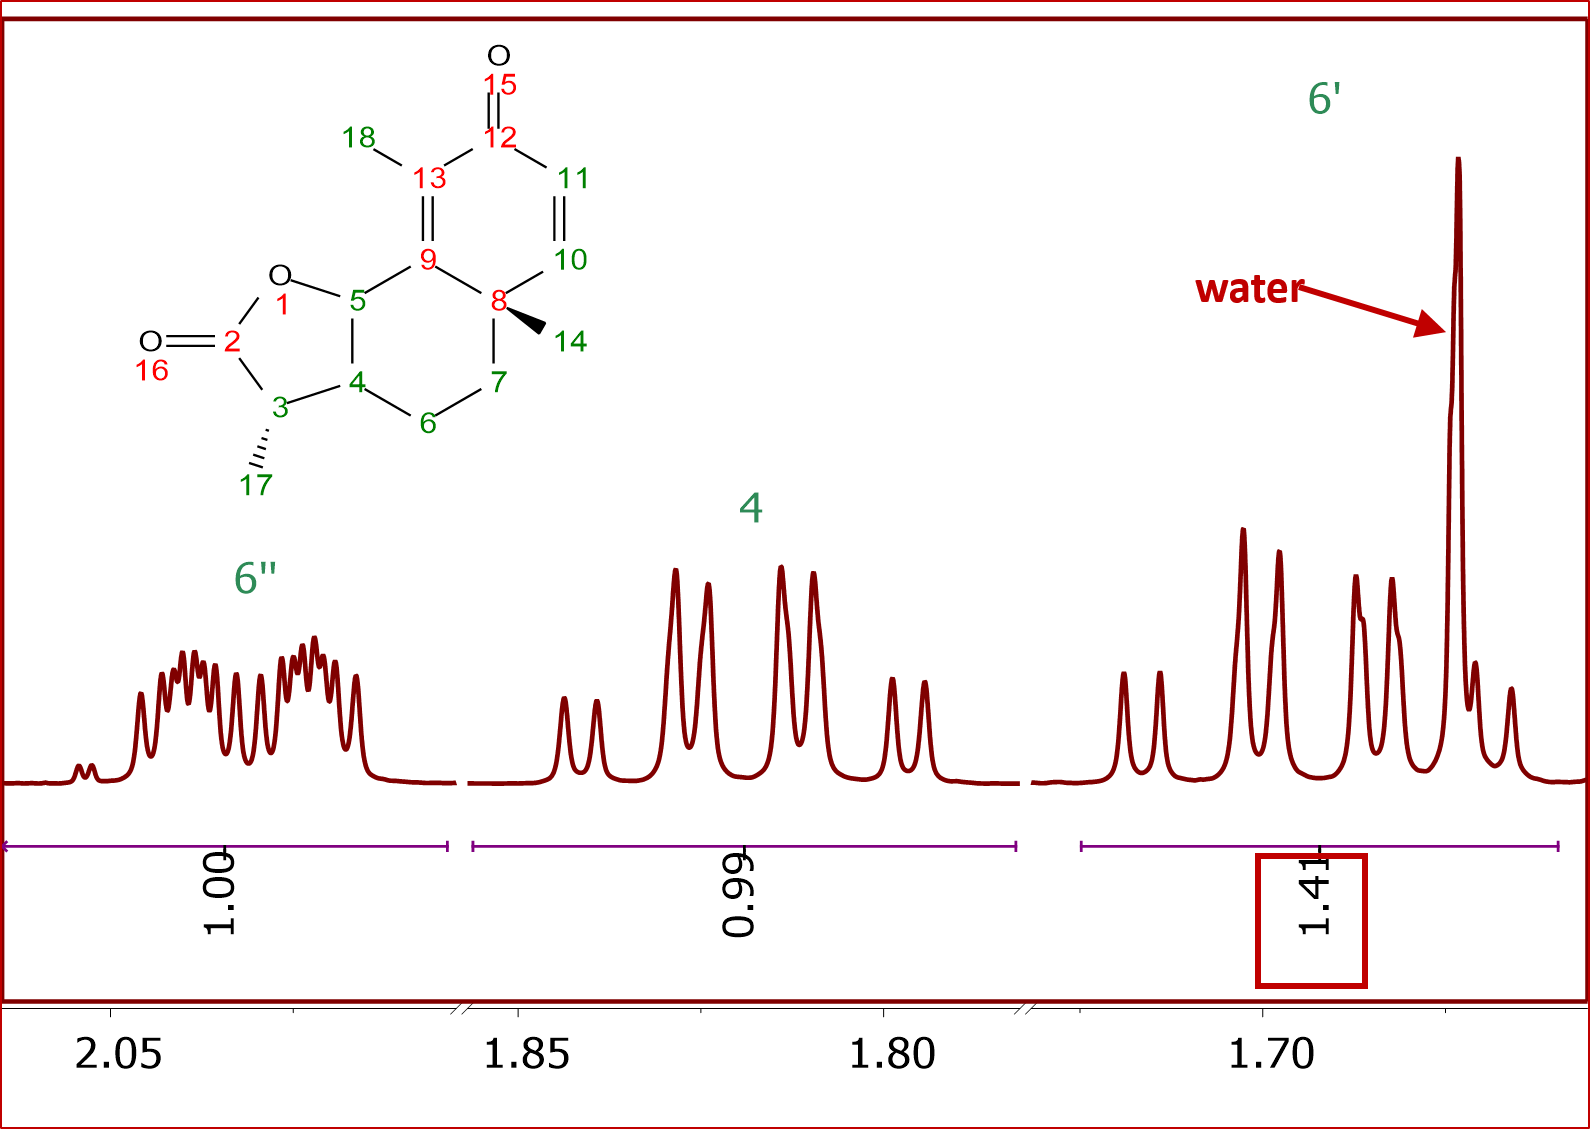 NMR Analysis, Processing and Prediction